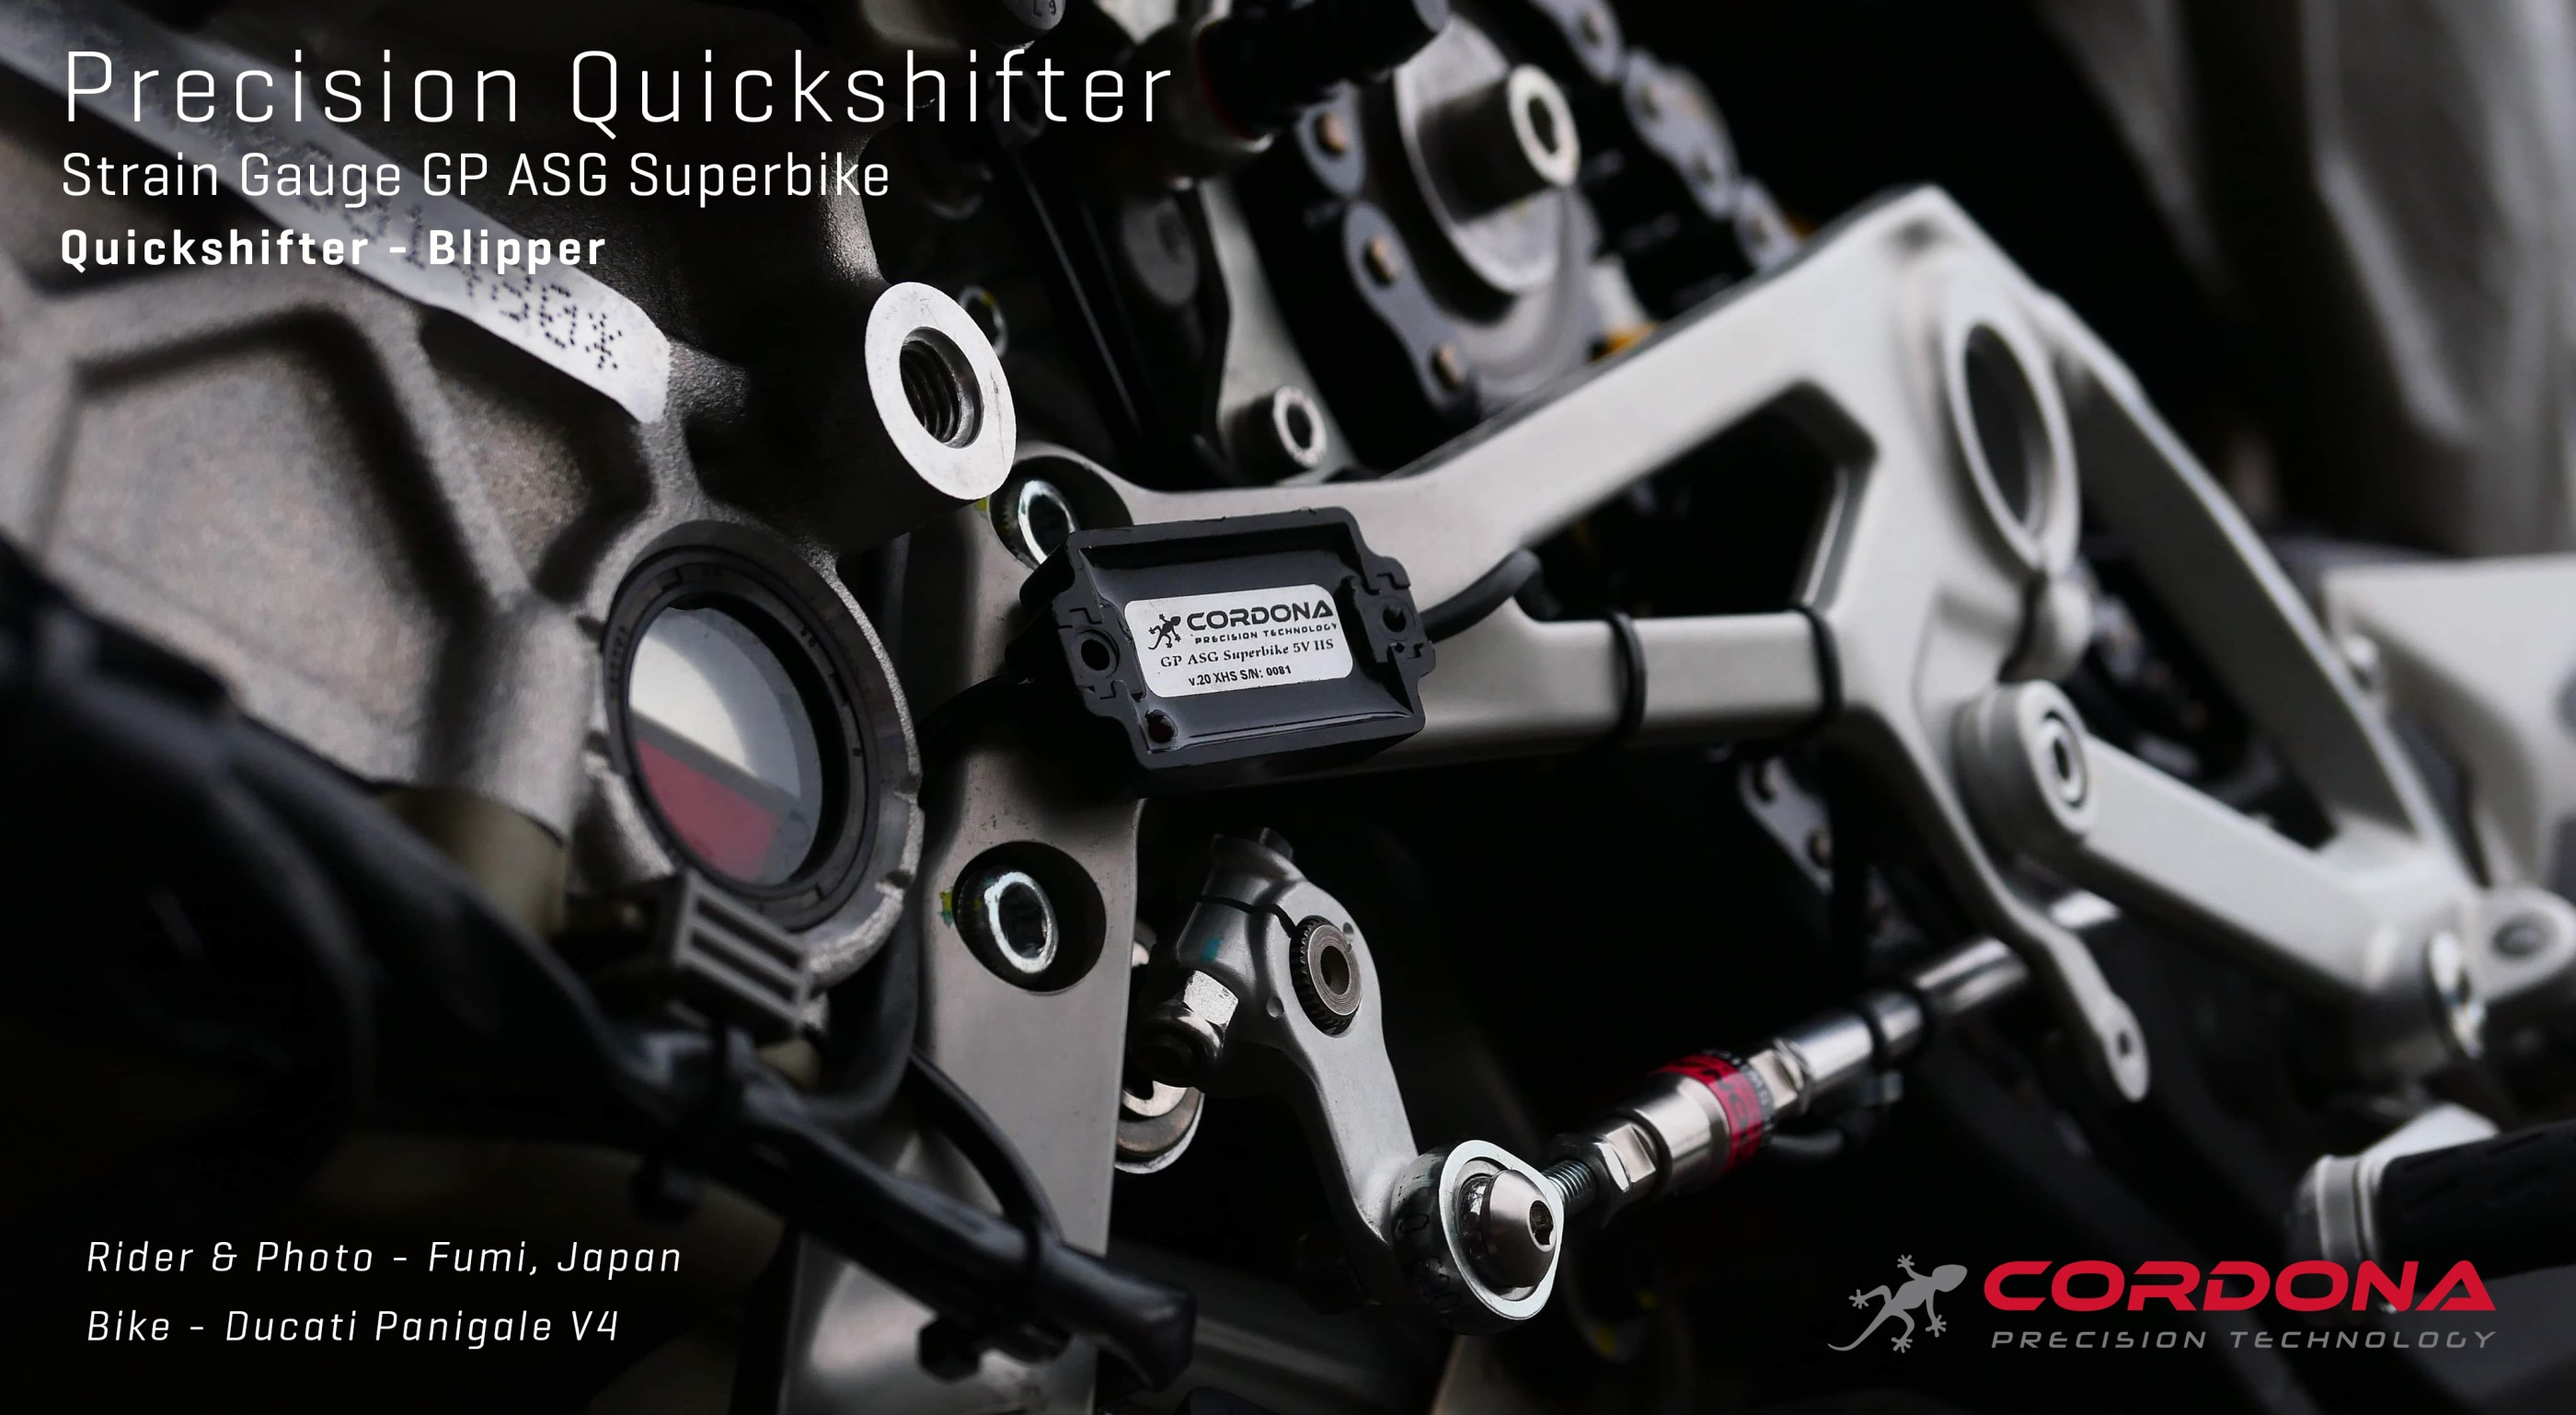 Ducati DQS Replacement Quickshifter - Blipper | Cordona Precision